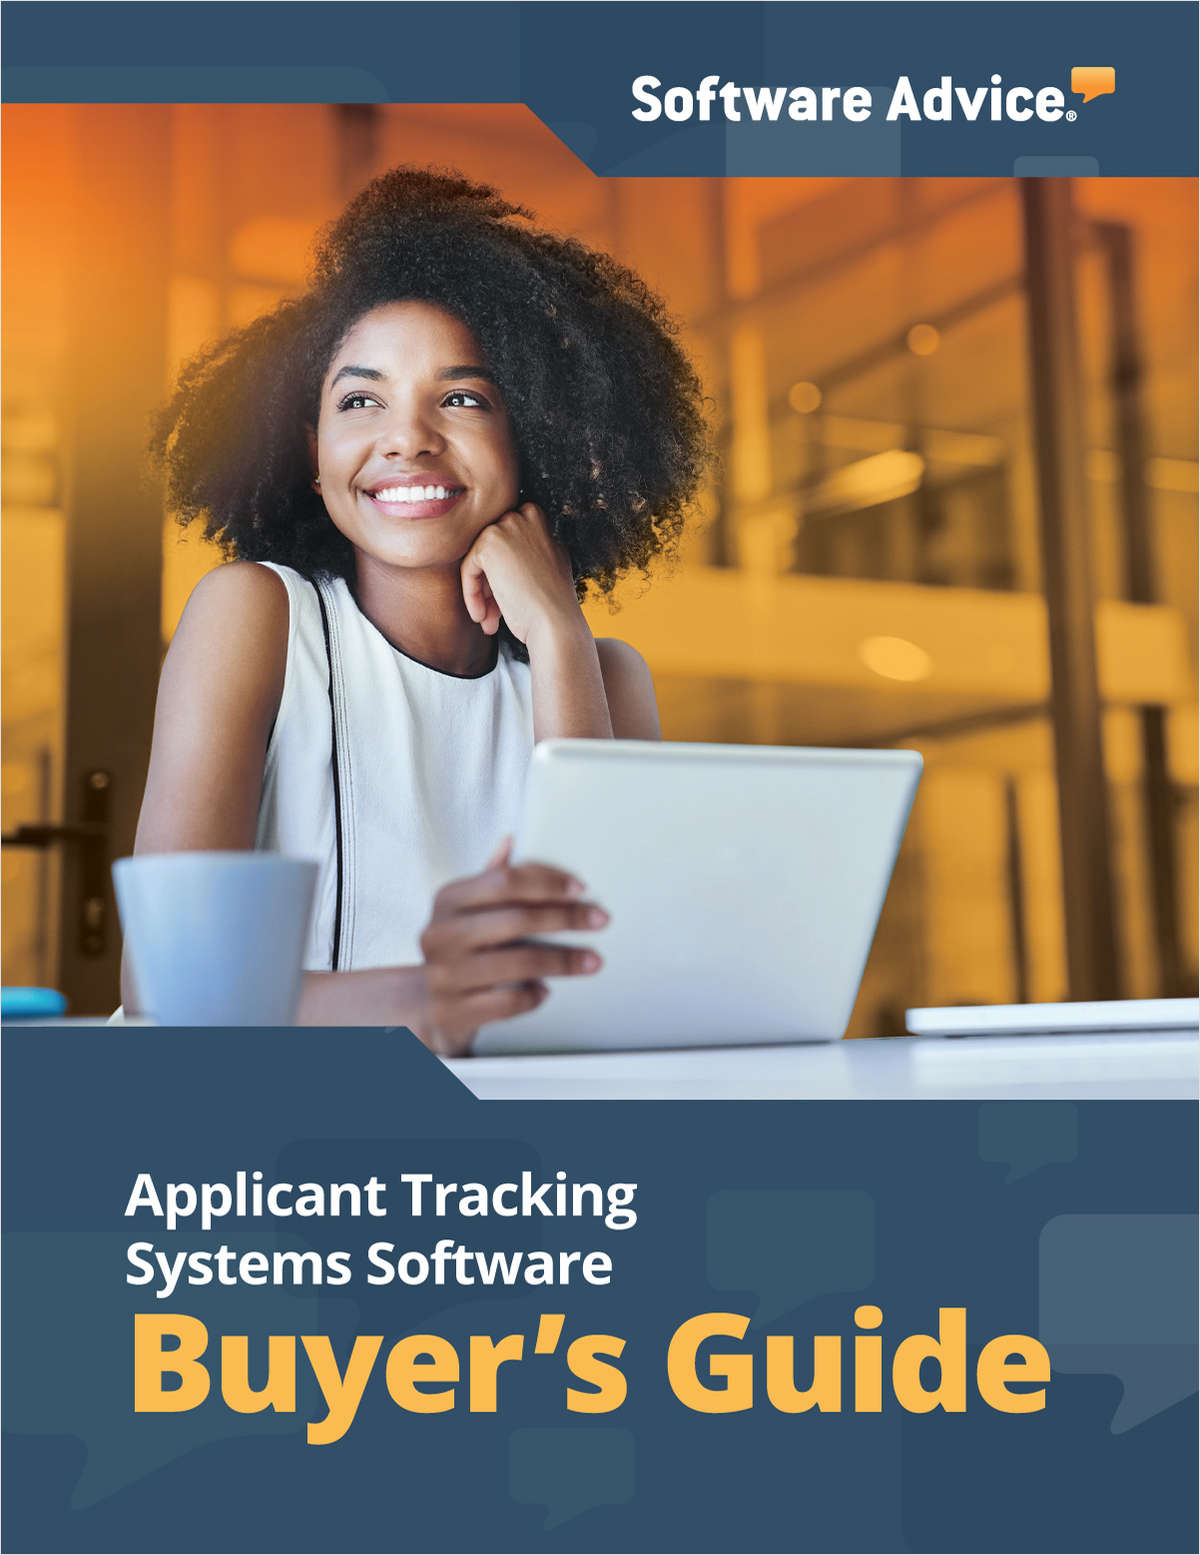 The 2019 Applicant Tracking Software Buyer's Guide